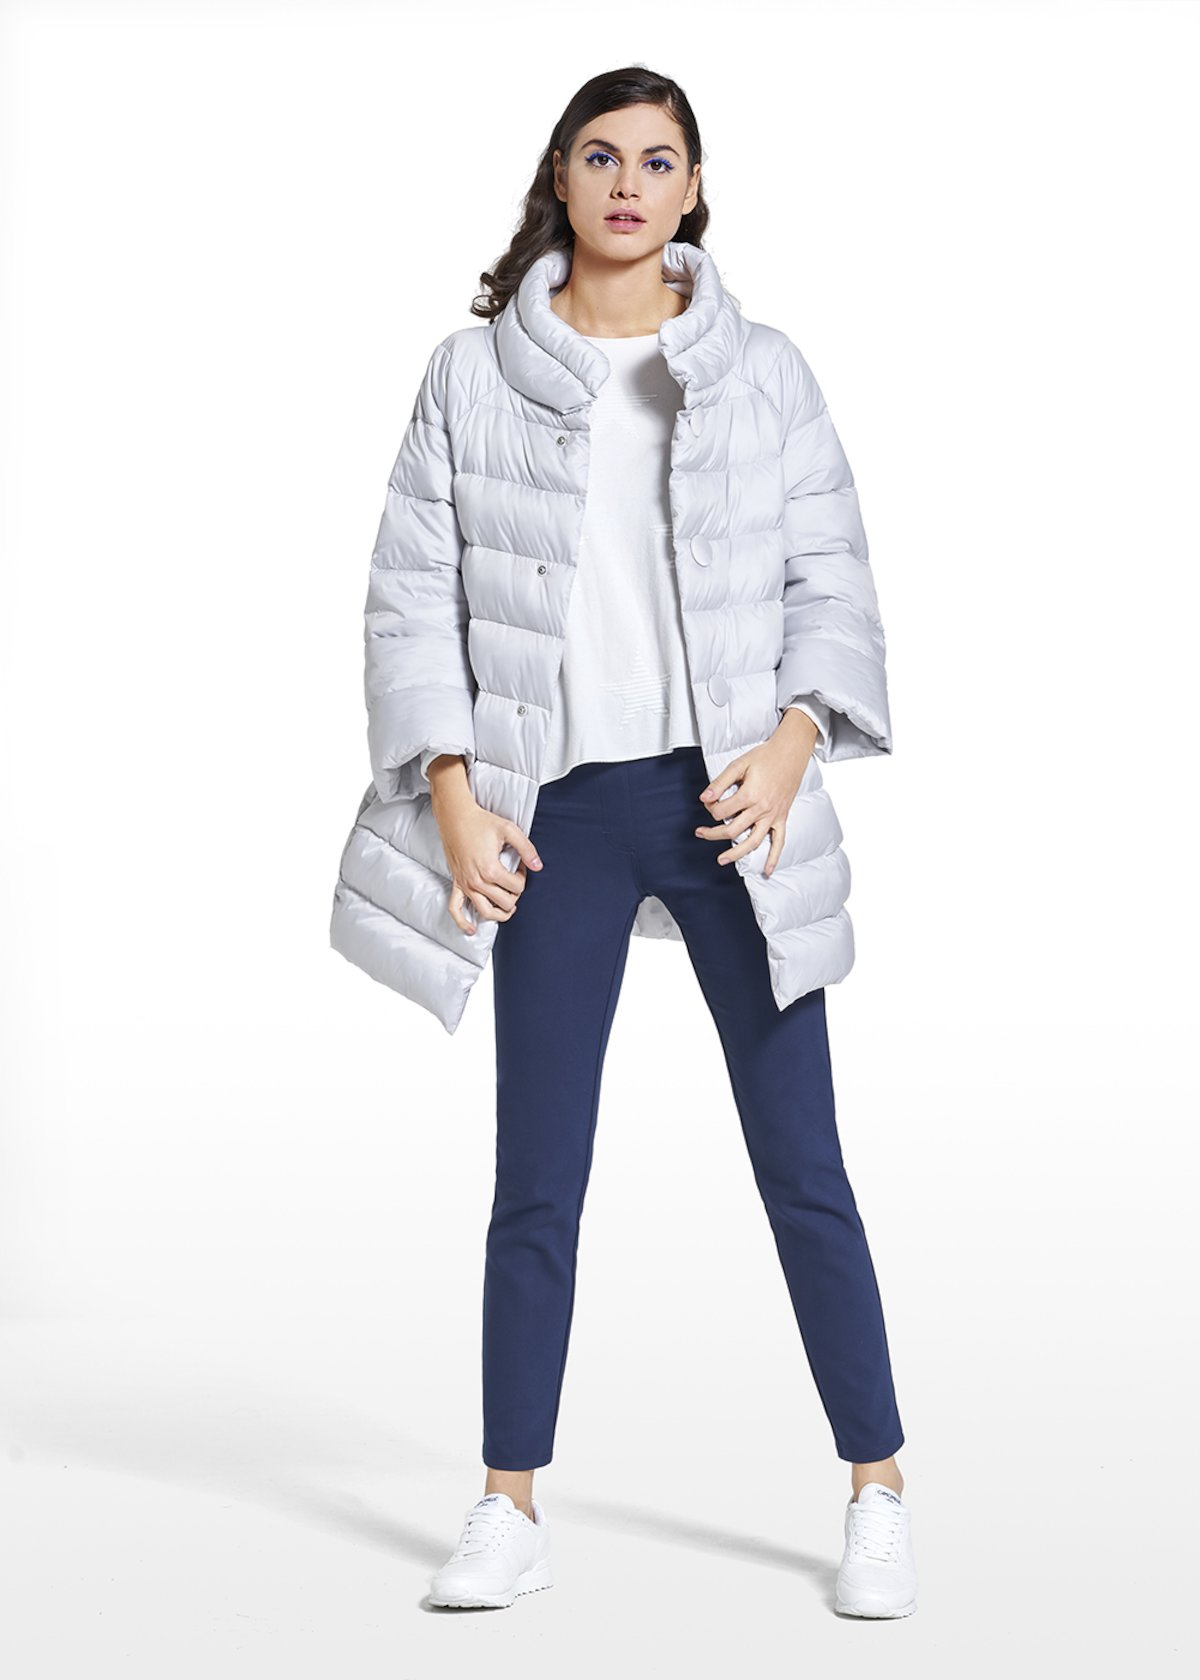 Down jacket Pablo with sleeves and high collar - Grey-Blue - Woman